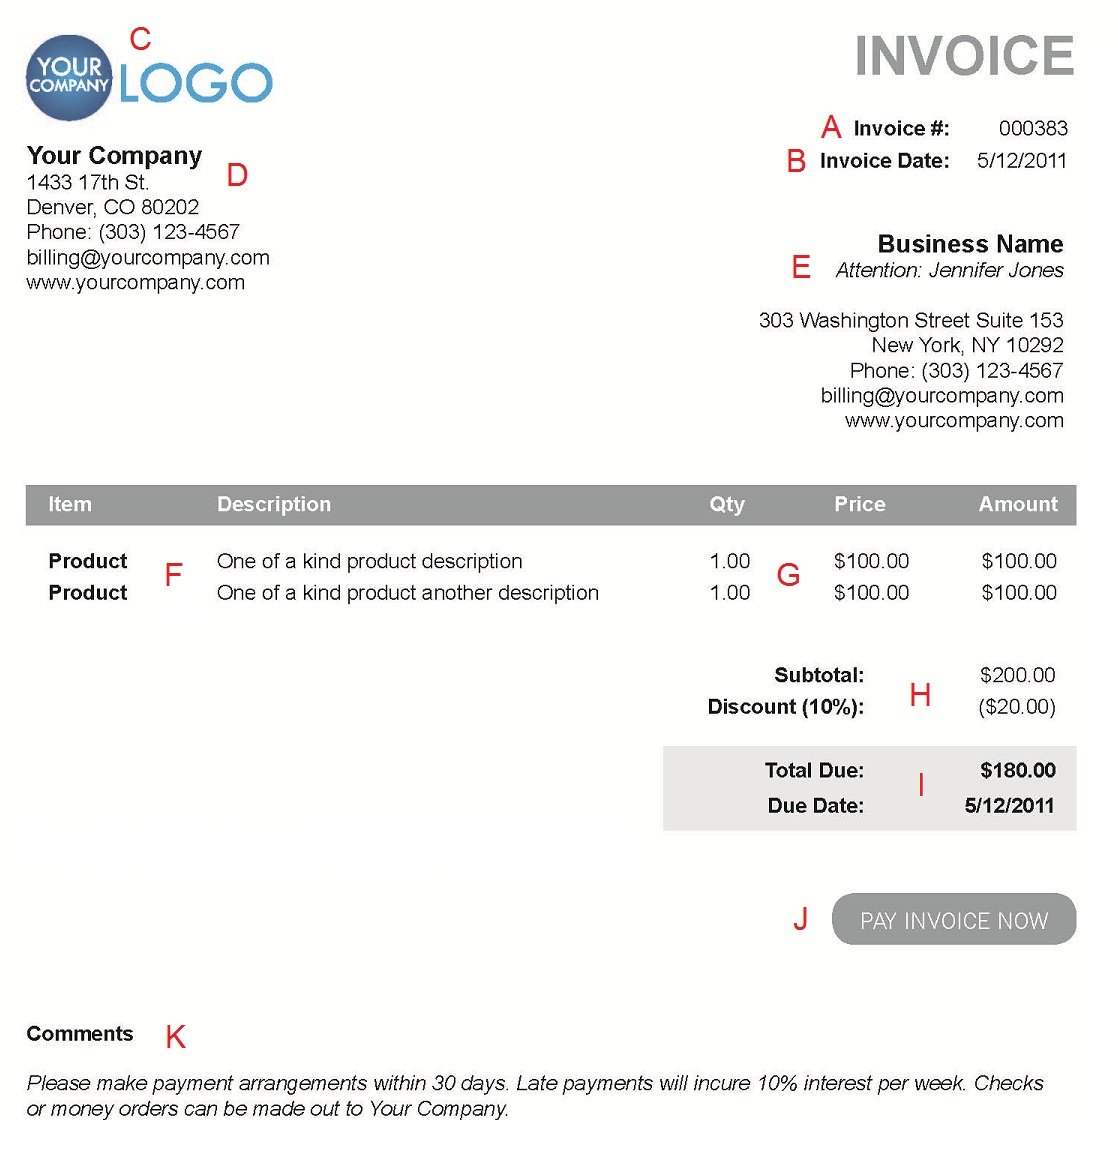 Centralasianshepherdus  Gorgeous The  Different Sections Of An Electronic Payment Invoice With Excellent A  With Lovely Blank Invoice Template Free Also Table For Invoice Document In Sap In Addition Customizing Invoices In Quickbooks And Invoice To Go Help As Well As Processing Invoices Additionally Vat On Proforma Invoices From Paysimplecom With Centralasianshepherdus  Excellent The  Different Sections Of An Electronic Payment Invoice With Lovely A  And Gorgeous Blank Invoice Template Free Also Table For Invoice Document In Sap In Addition Customizing Invoices In Quickbooks From Paysimplecom